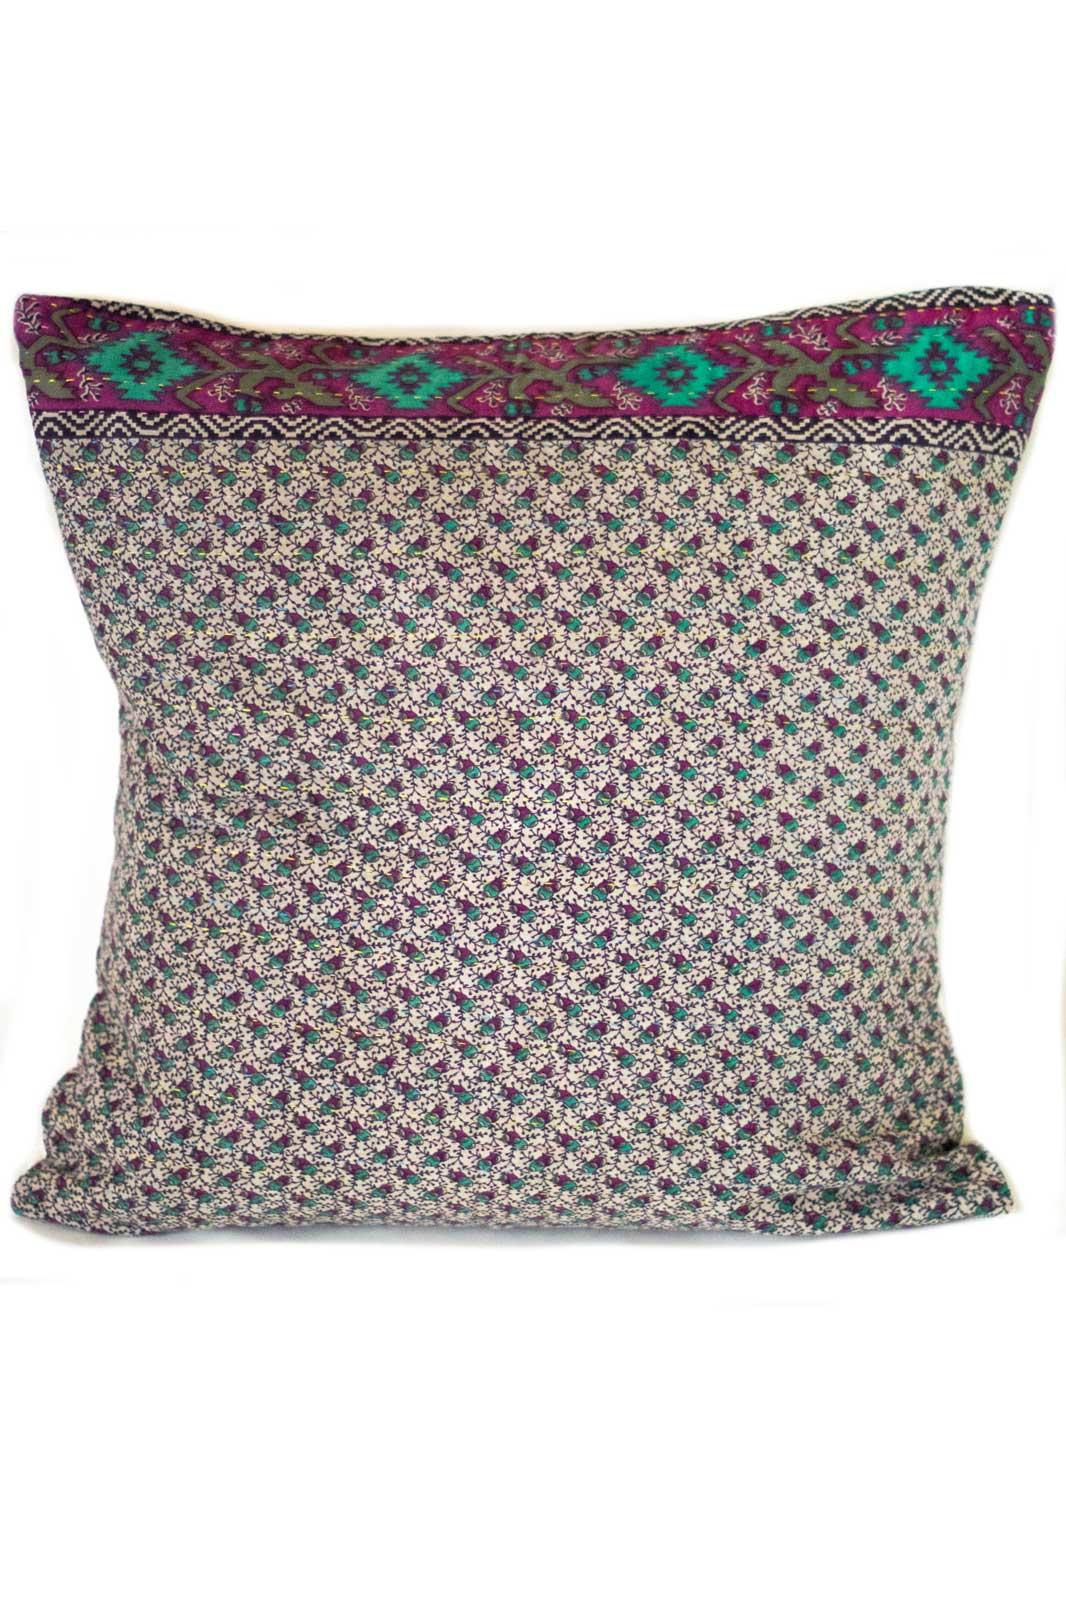 Intricate no. 6 Kantha Pillow Cover